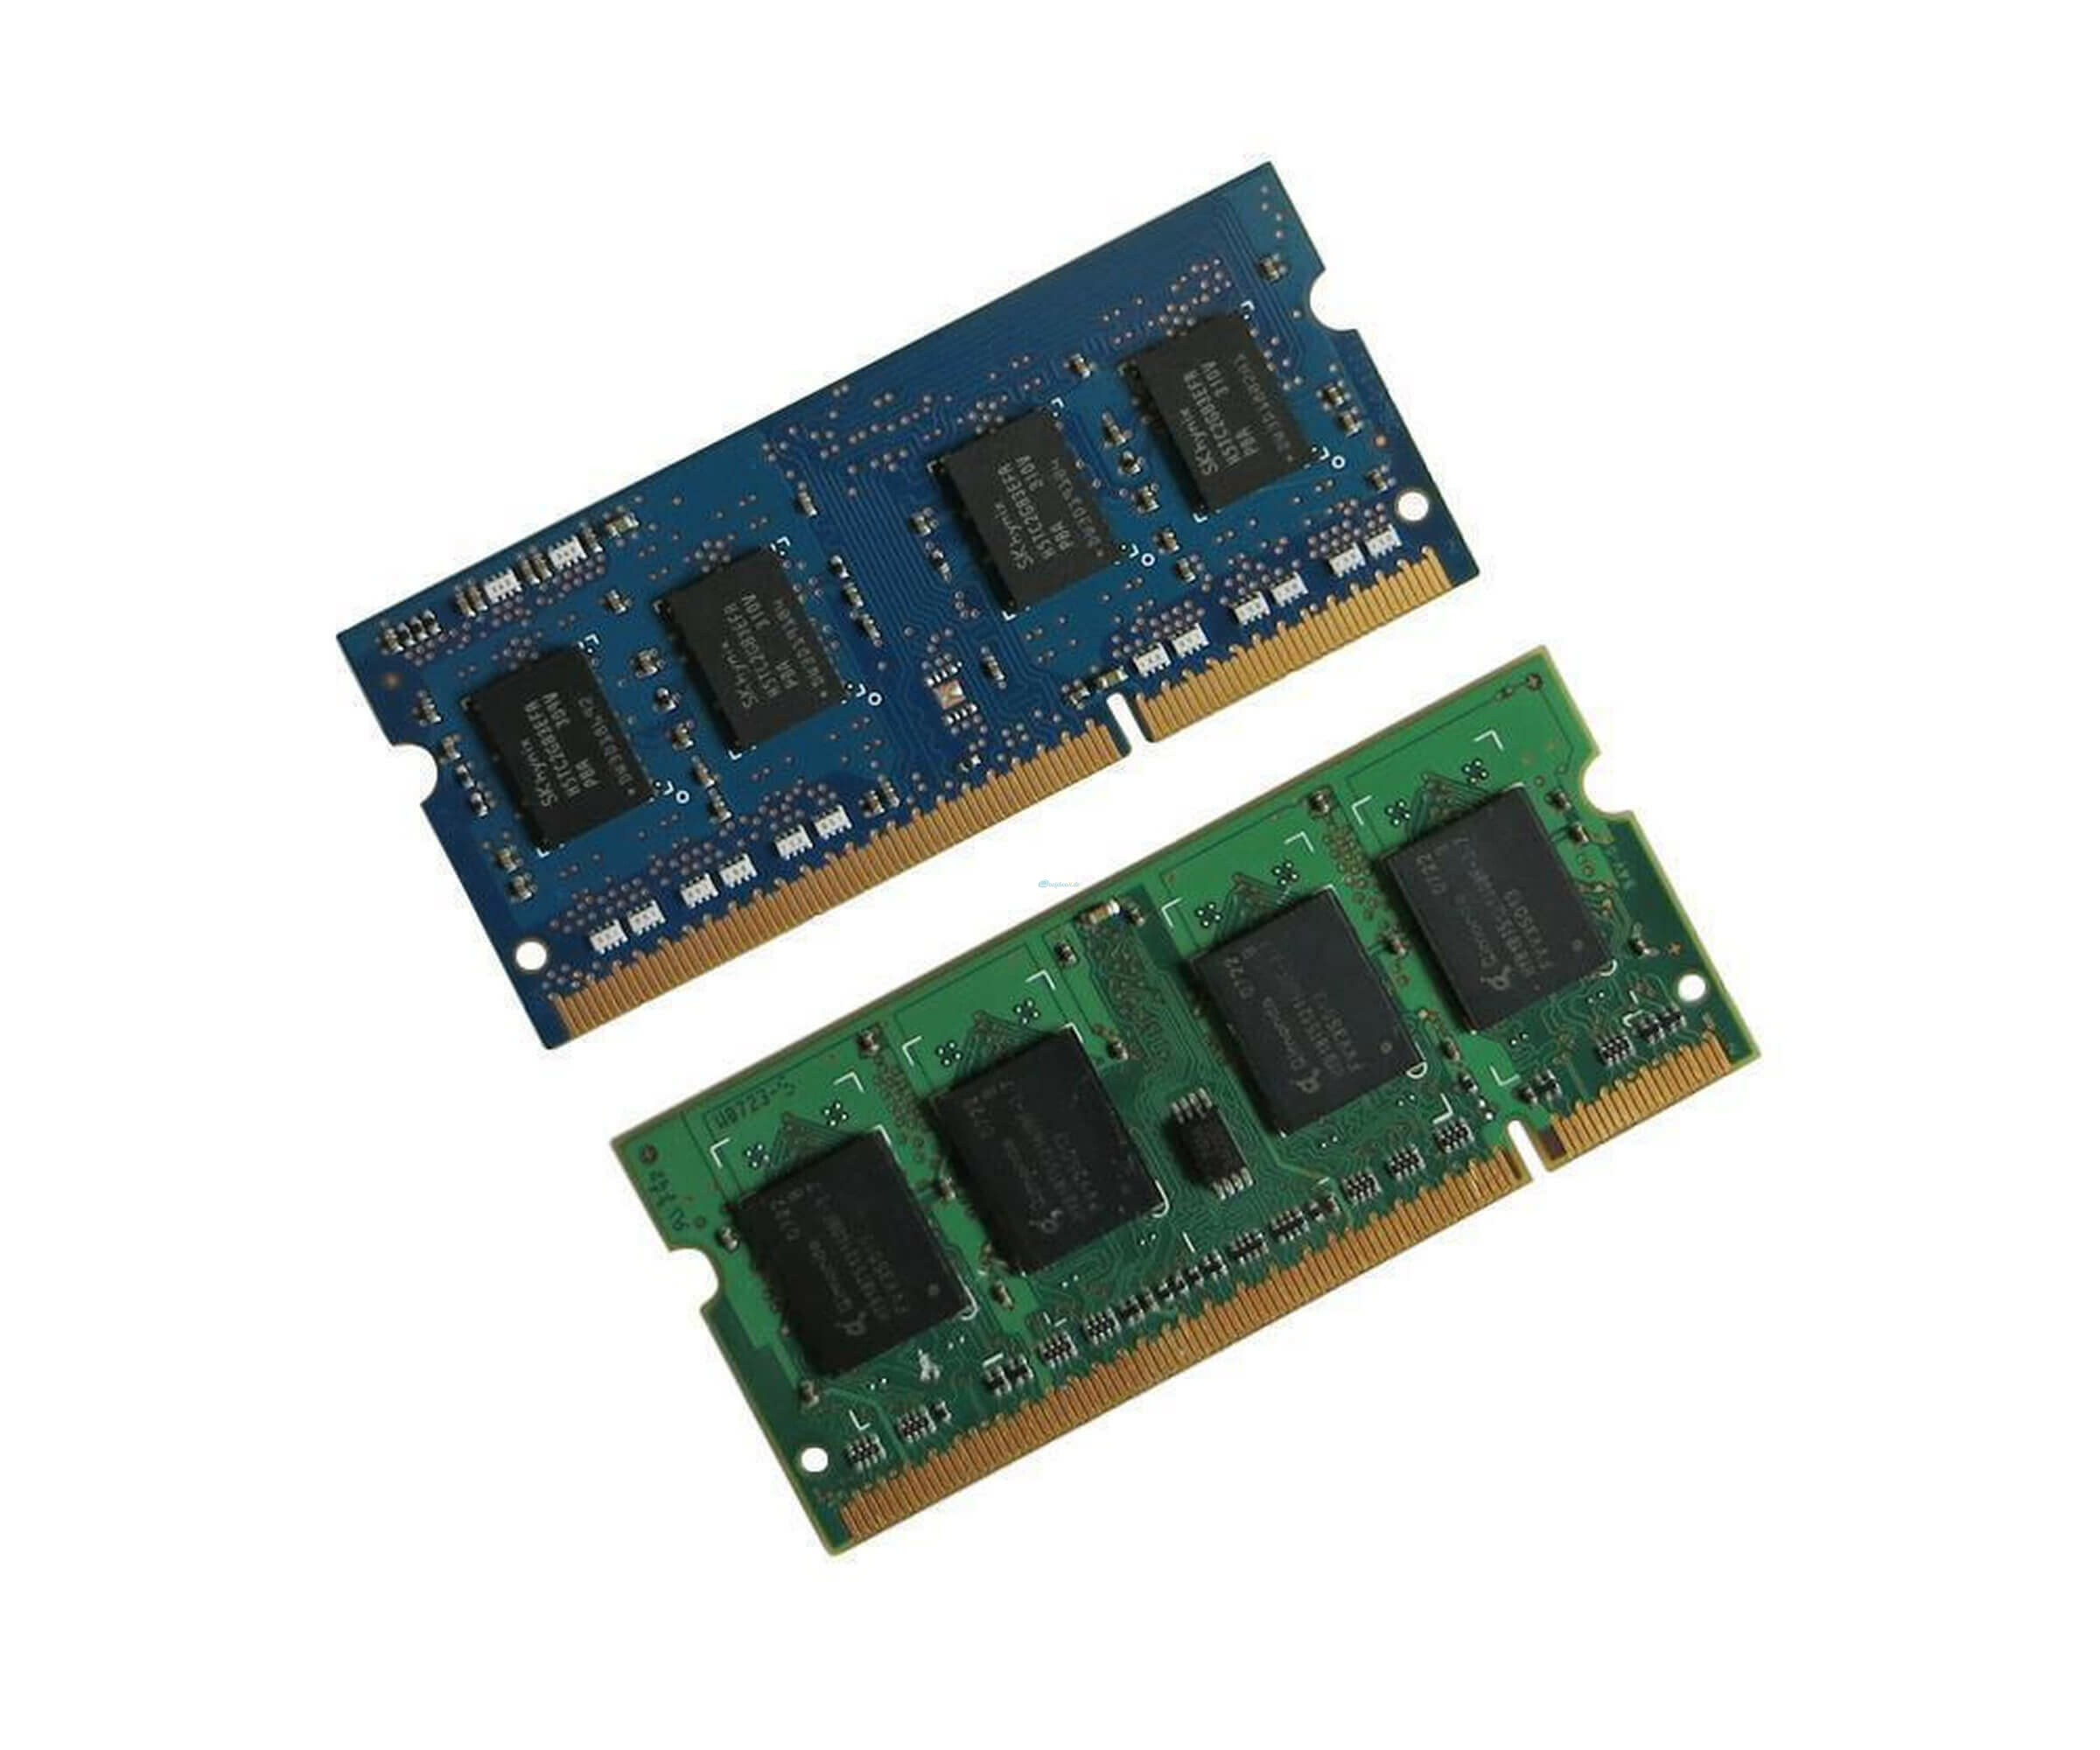 Micron MT8HTF12864HDY-53EE1 Memory - 1 GB - PC-4200 - SODIMM 200-PIN - DDR2